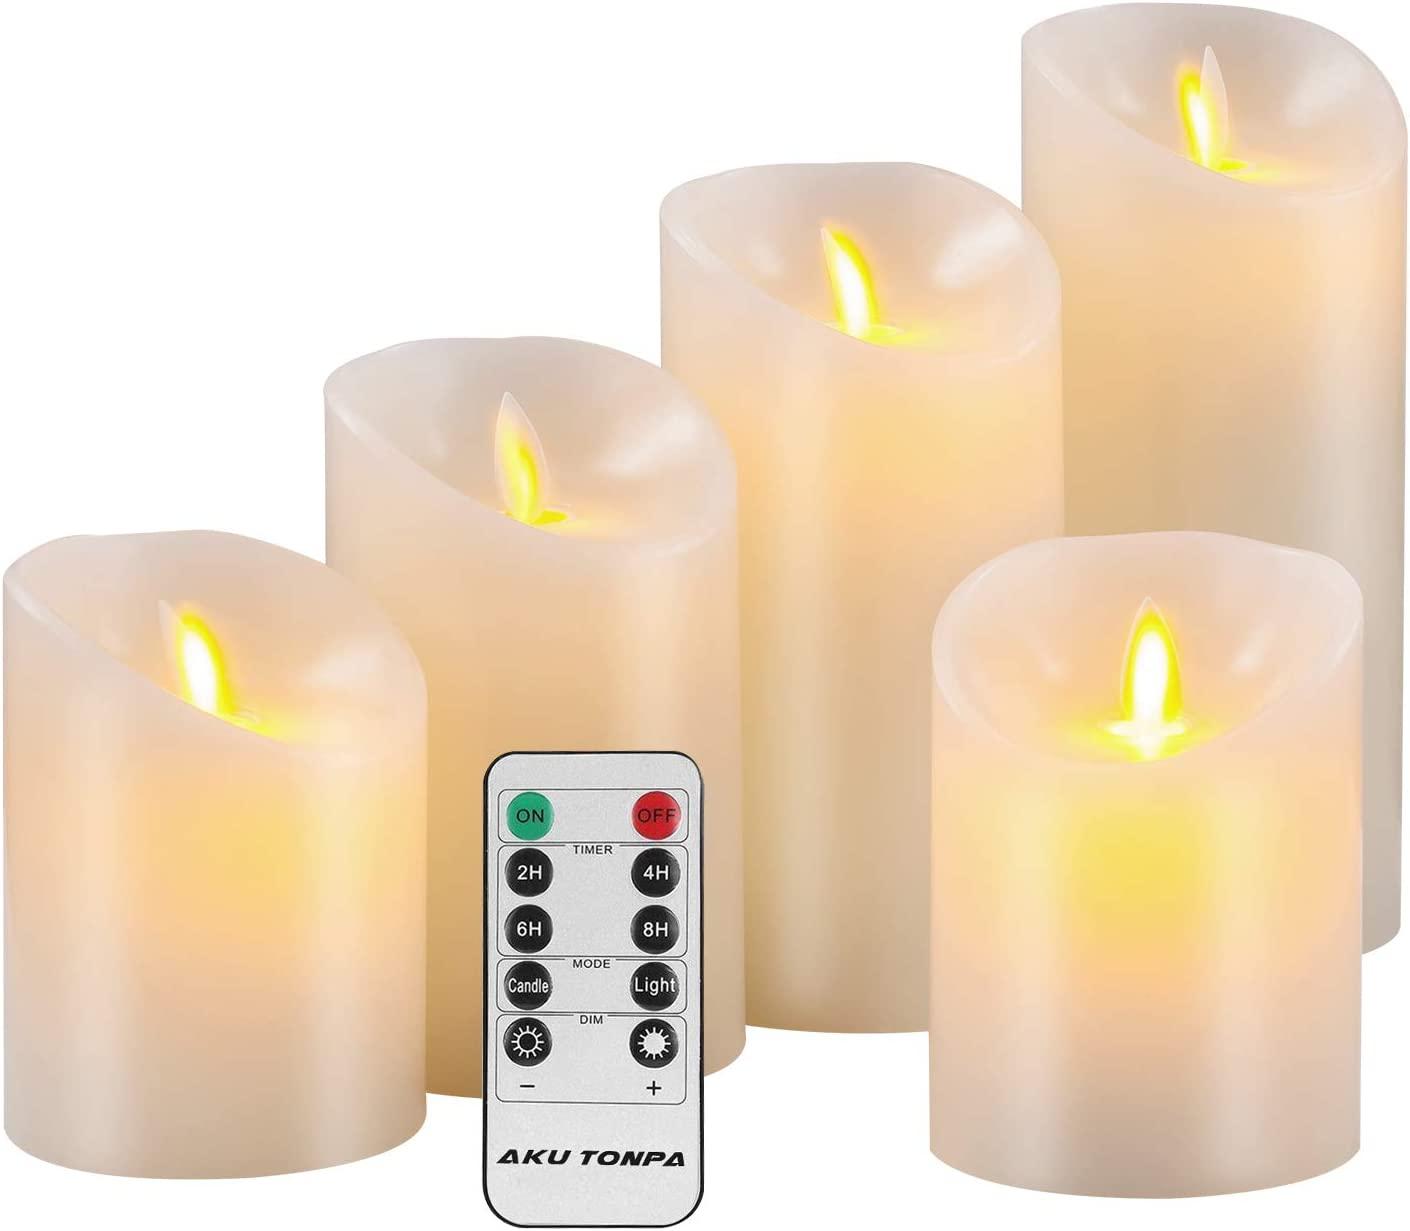 "Aku Tonpa Flameless Candles Battery Operated Pillar Real Wax Electric LED Candle Gift Sets with Remote Control Cycling 24 Hours Timer, 4"" 4"" 5"" 6"" 7"" Pack of 5"